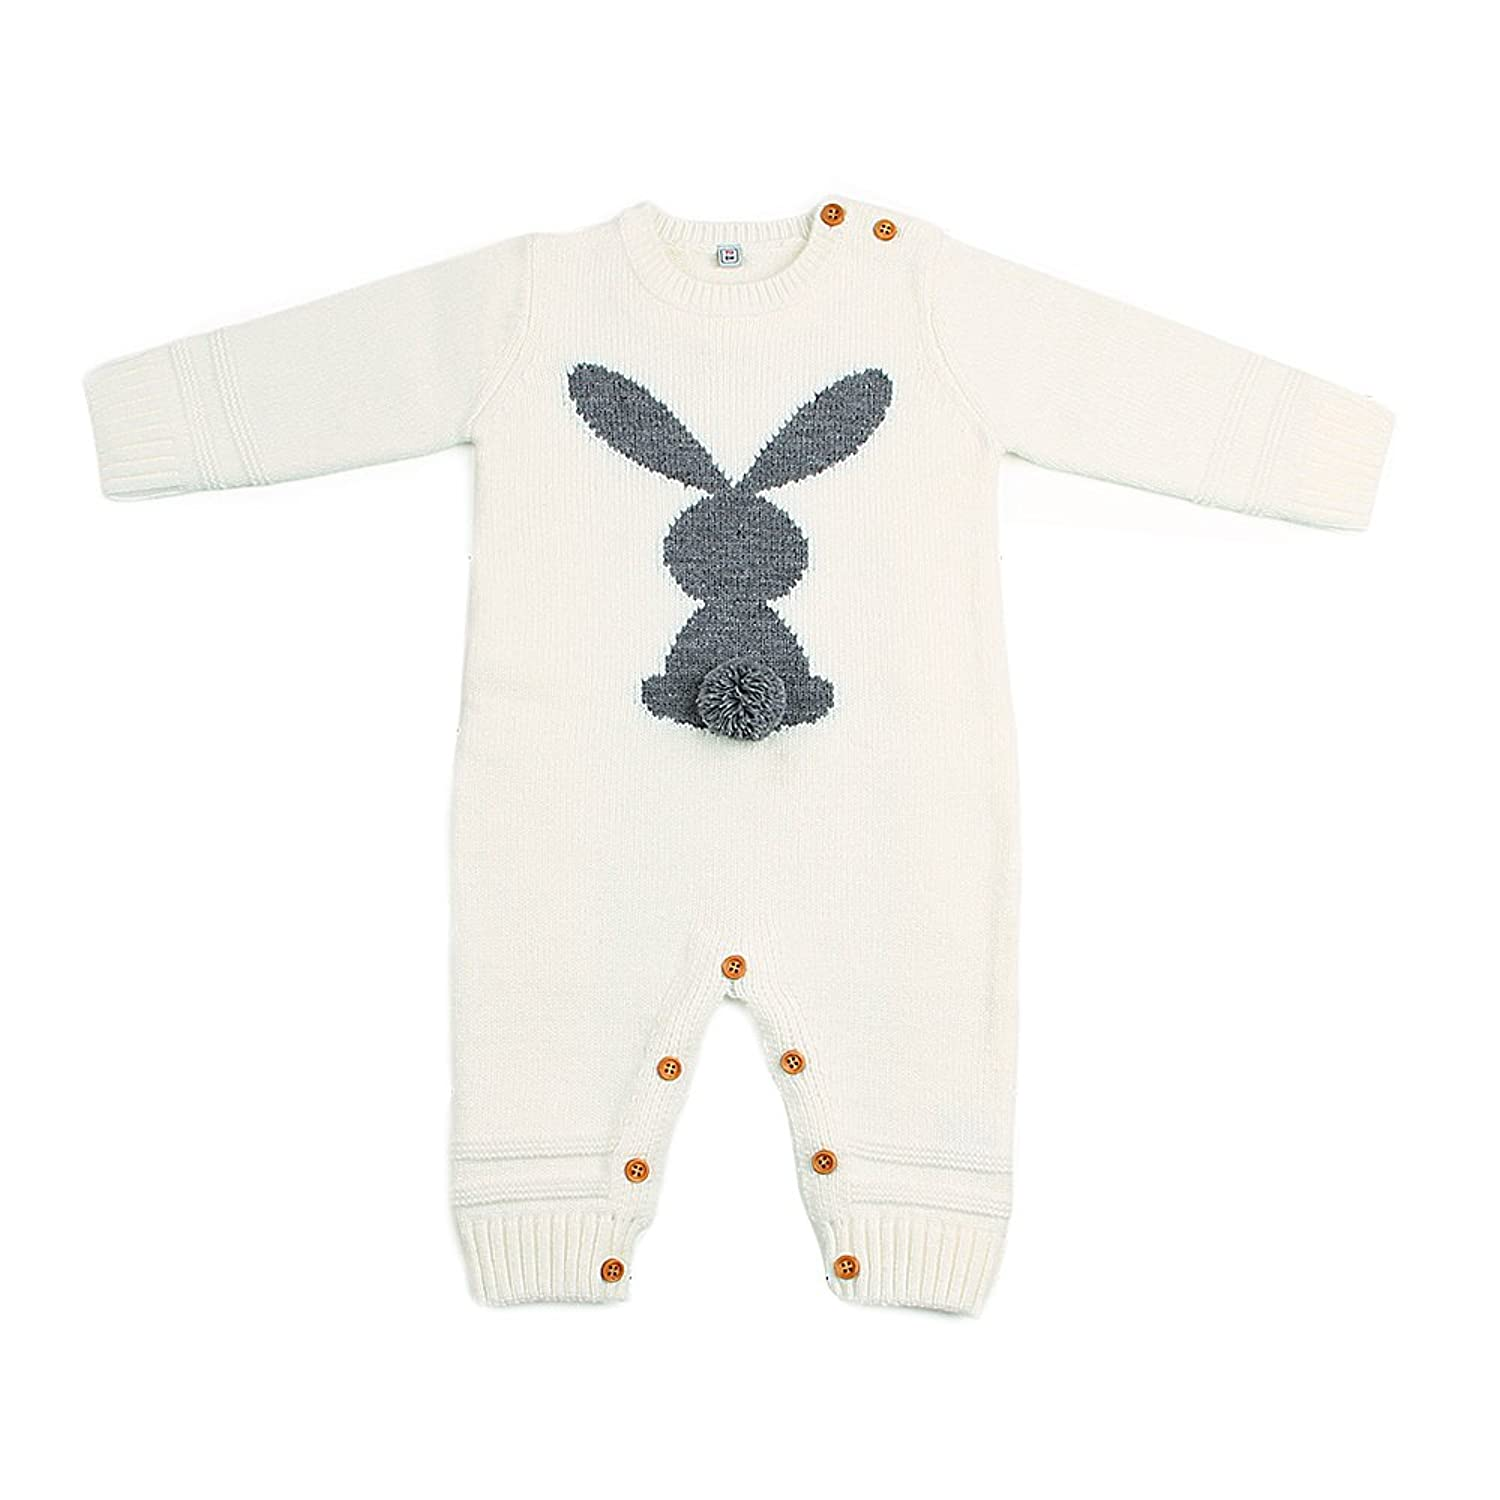 c248916039da This Cute Baby Girls Boys Rompers is 100% Polyester Knitted, It\'s  Comfortable and Soft. No Any Harm to Your Baby\'s Skin, Excellent Quality